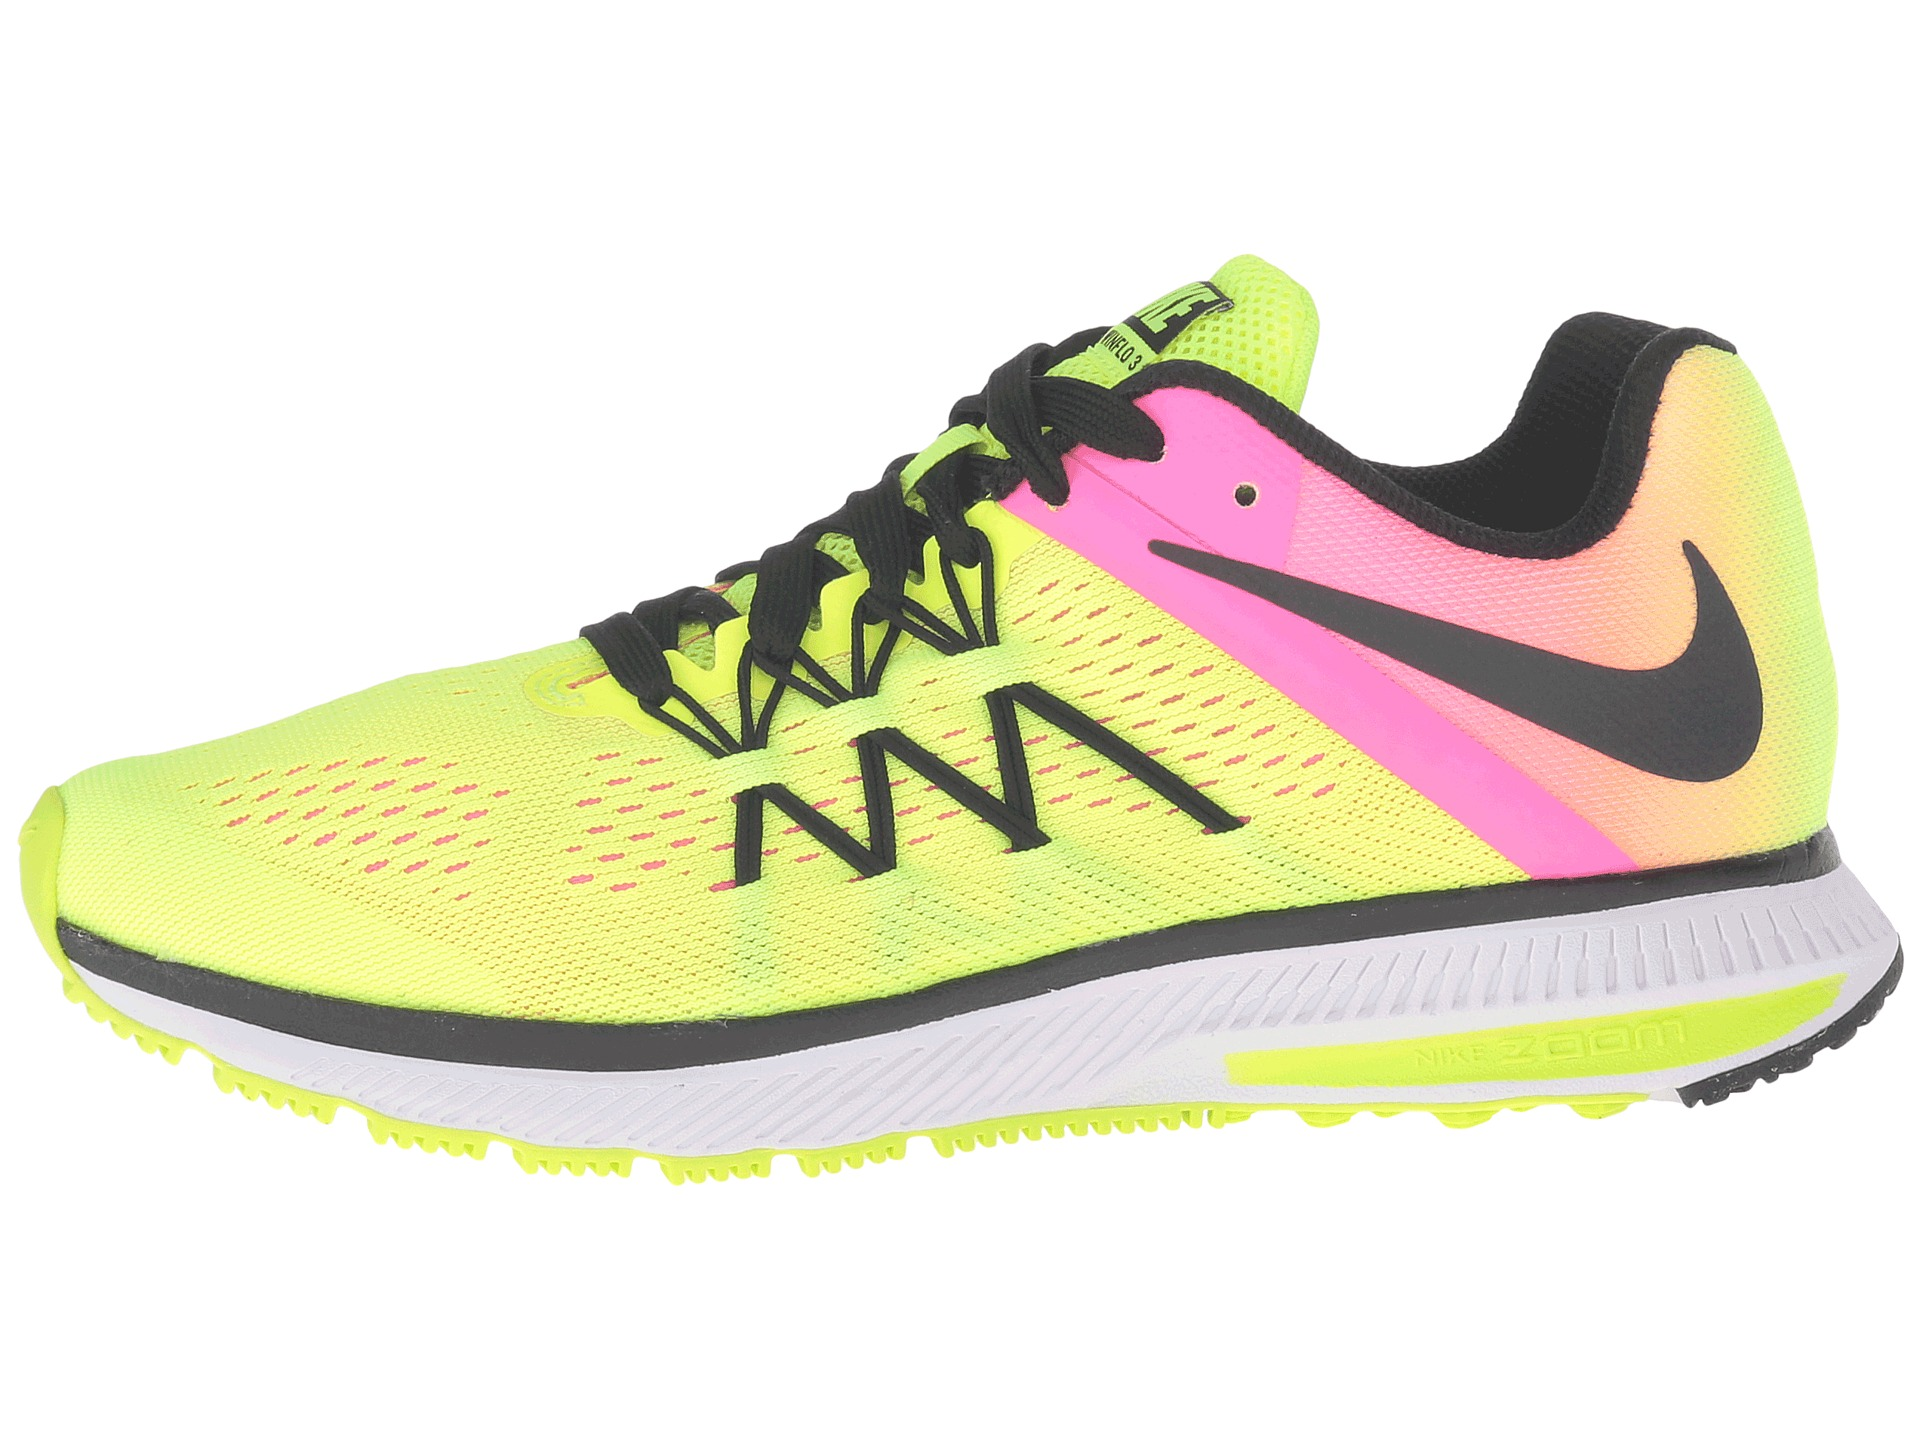 separation shoes cb2ec 71746 ... nike zoom winflo 3 silver yellow  nike zoom winflo 3 womens pink ...